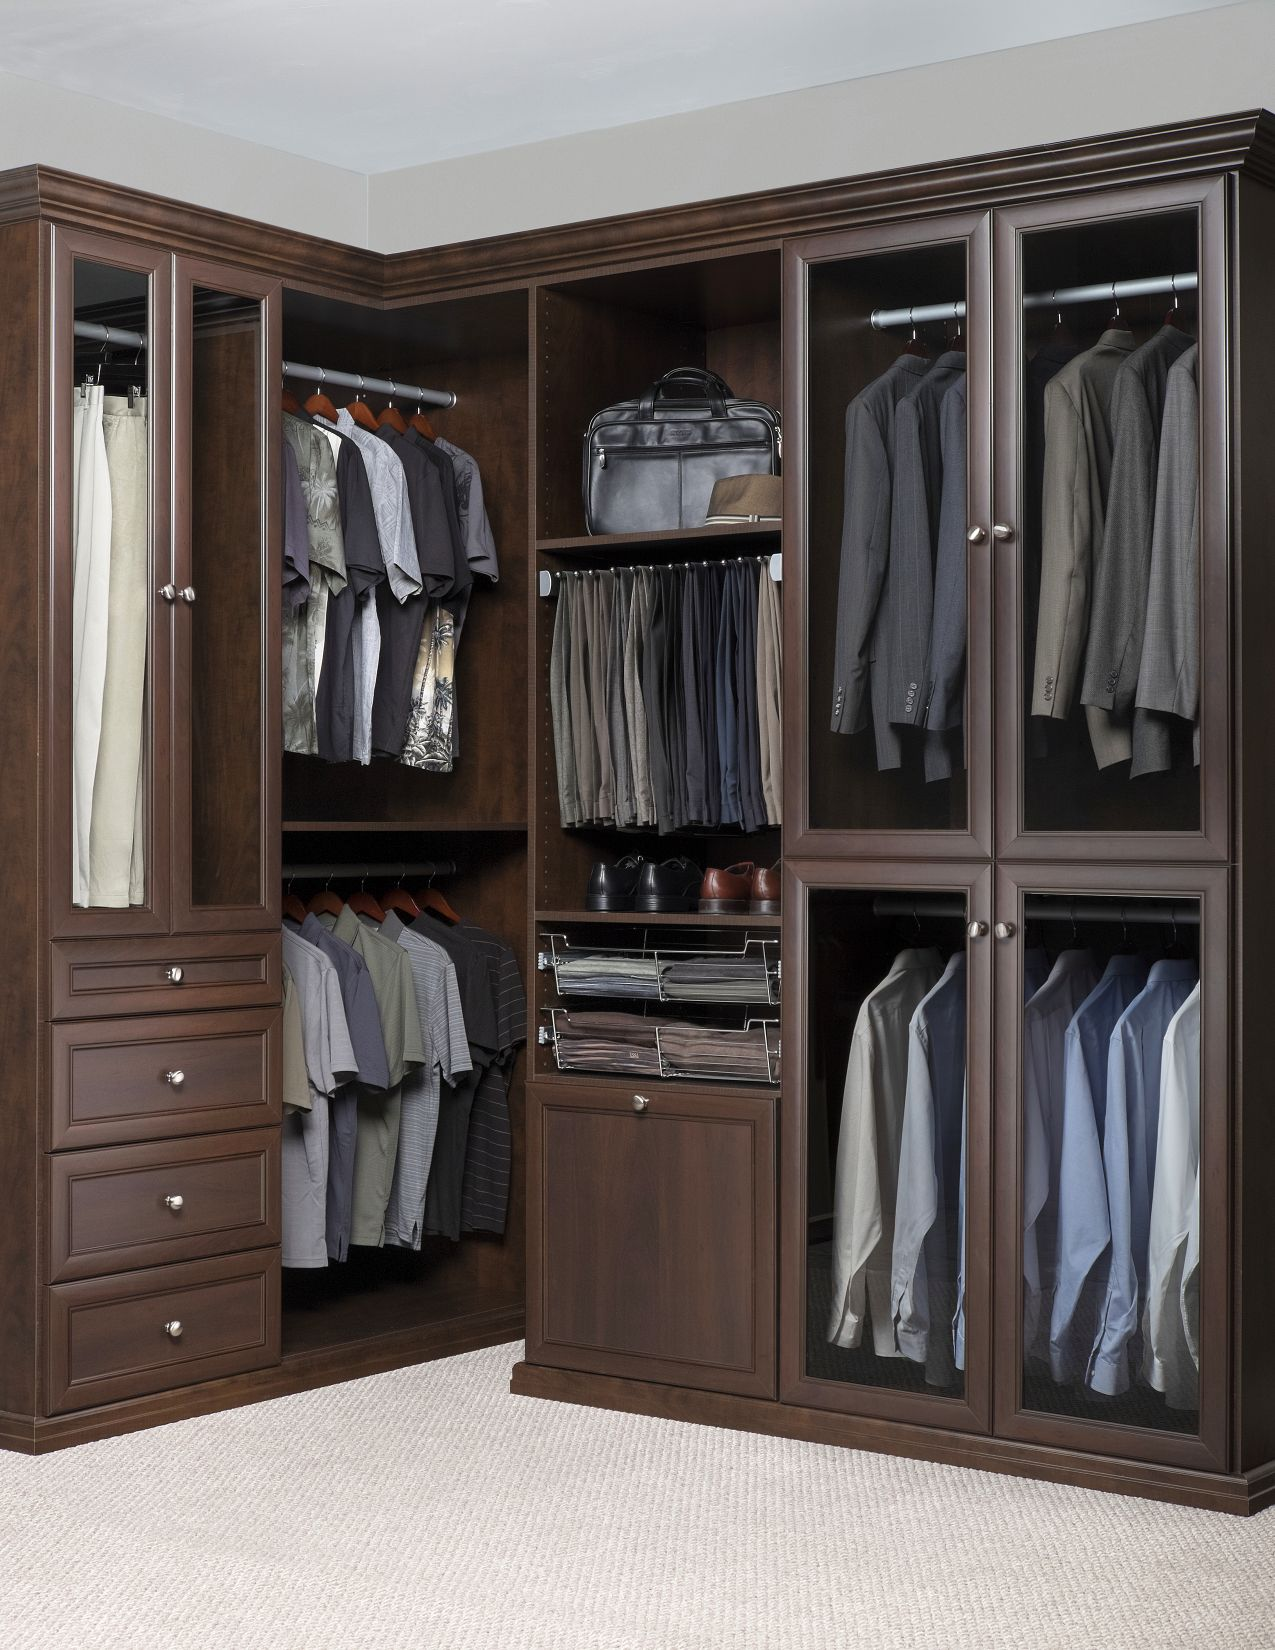 Images Of Walk In Closets custom walk-in closet designs | austin closet solutions